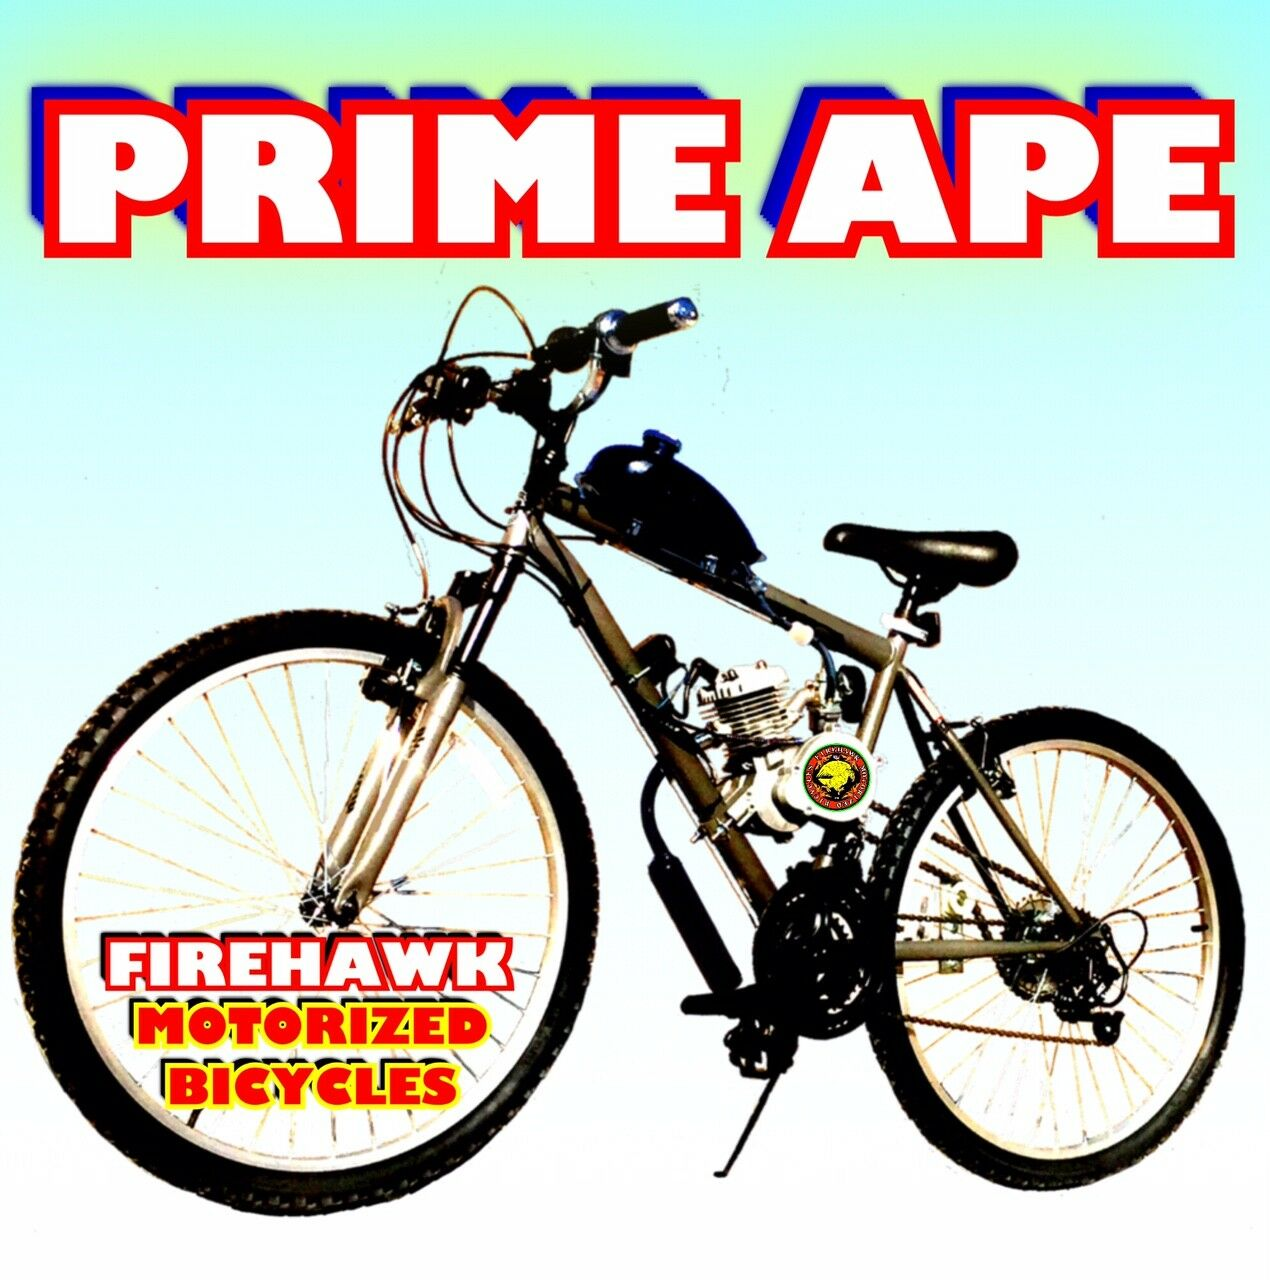 USA SELLER NEW 2019 PRIME APE COMPLETE 50 80 CC GAS MOTOR & BIKE SCOOTER MOPED